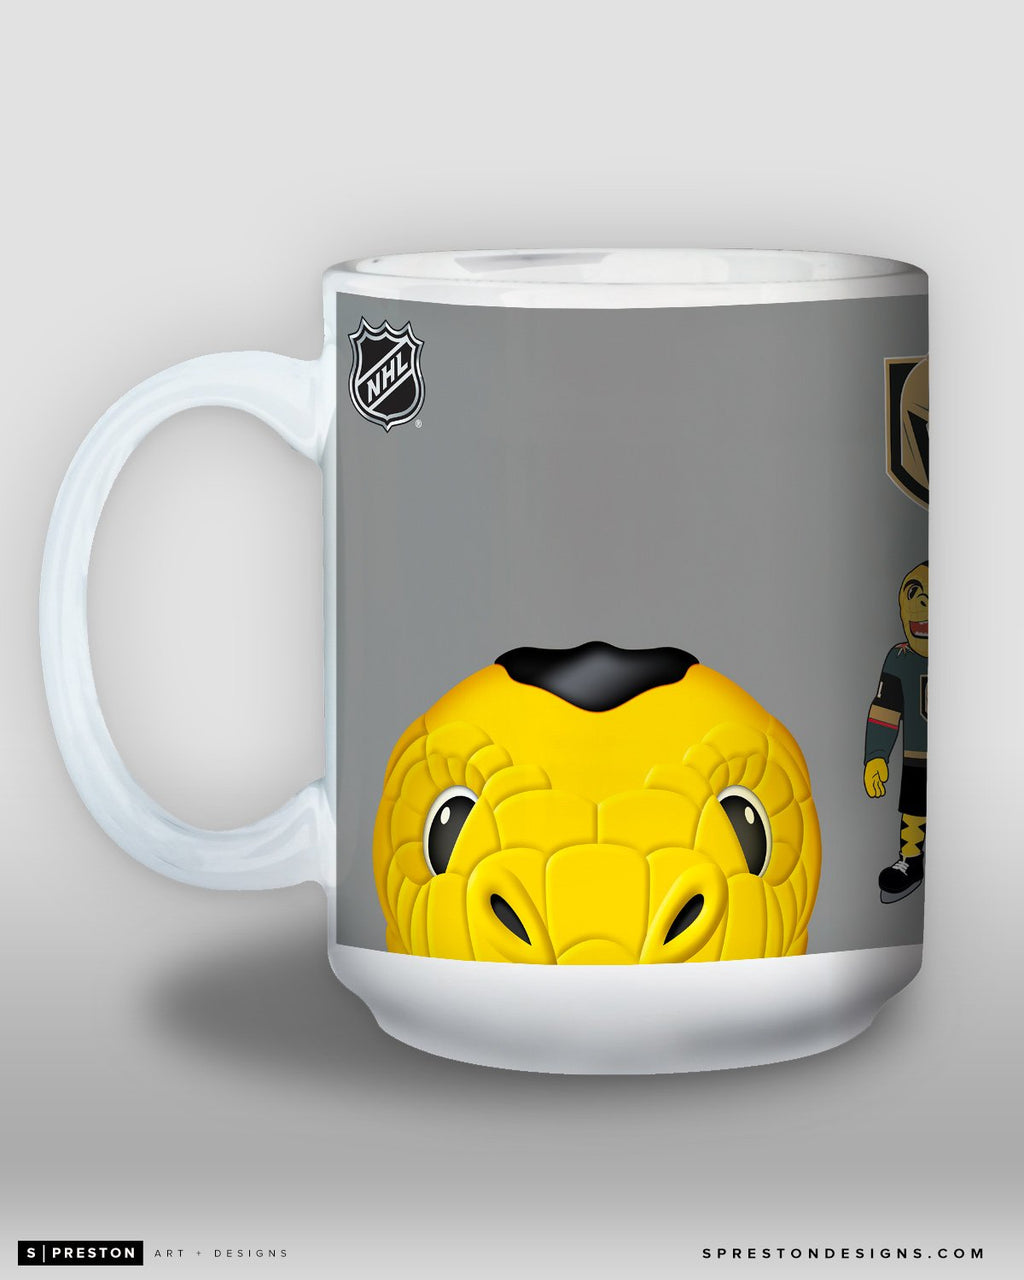 Minimalist Chance the Gila Monster Coffee Mug - NHL Licensed - Vegas Golden Knights Mascot